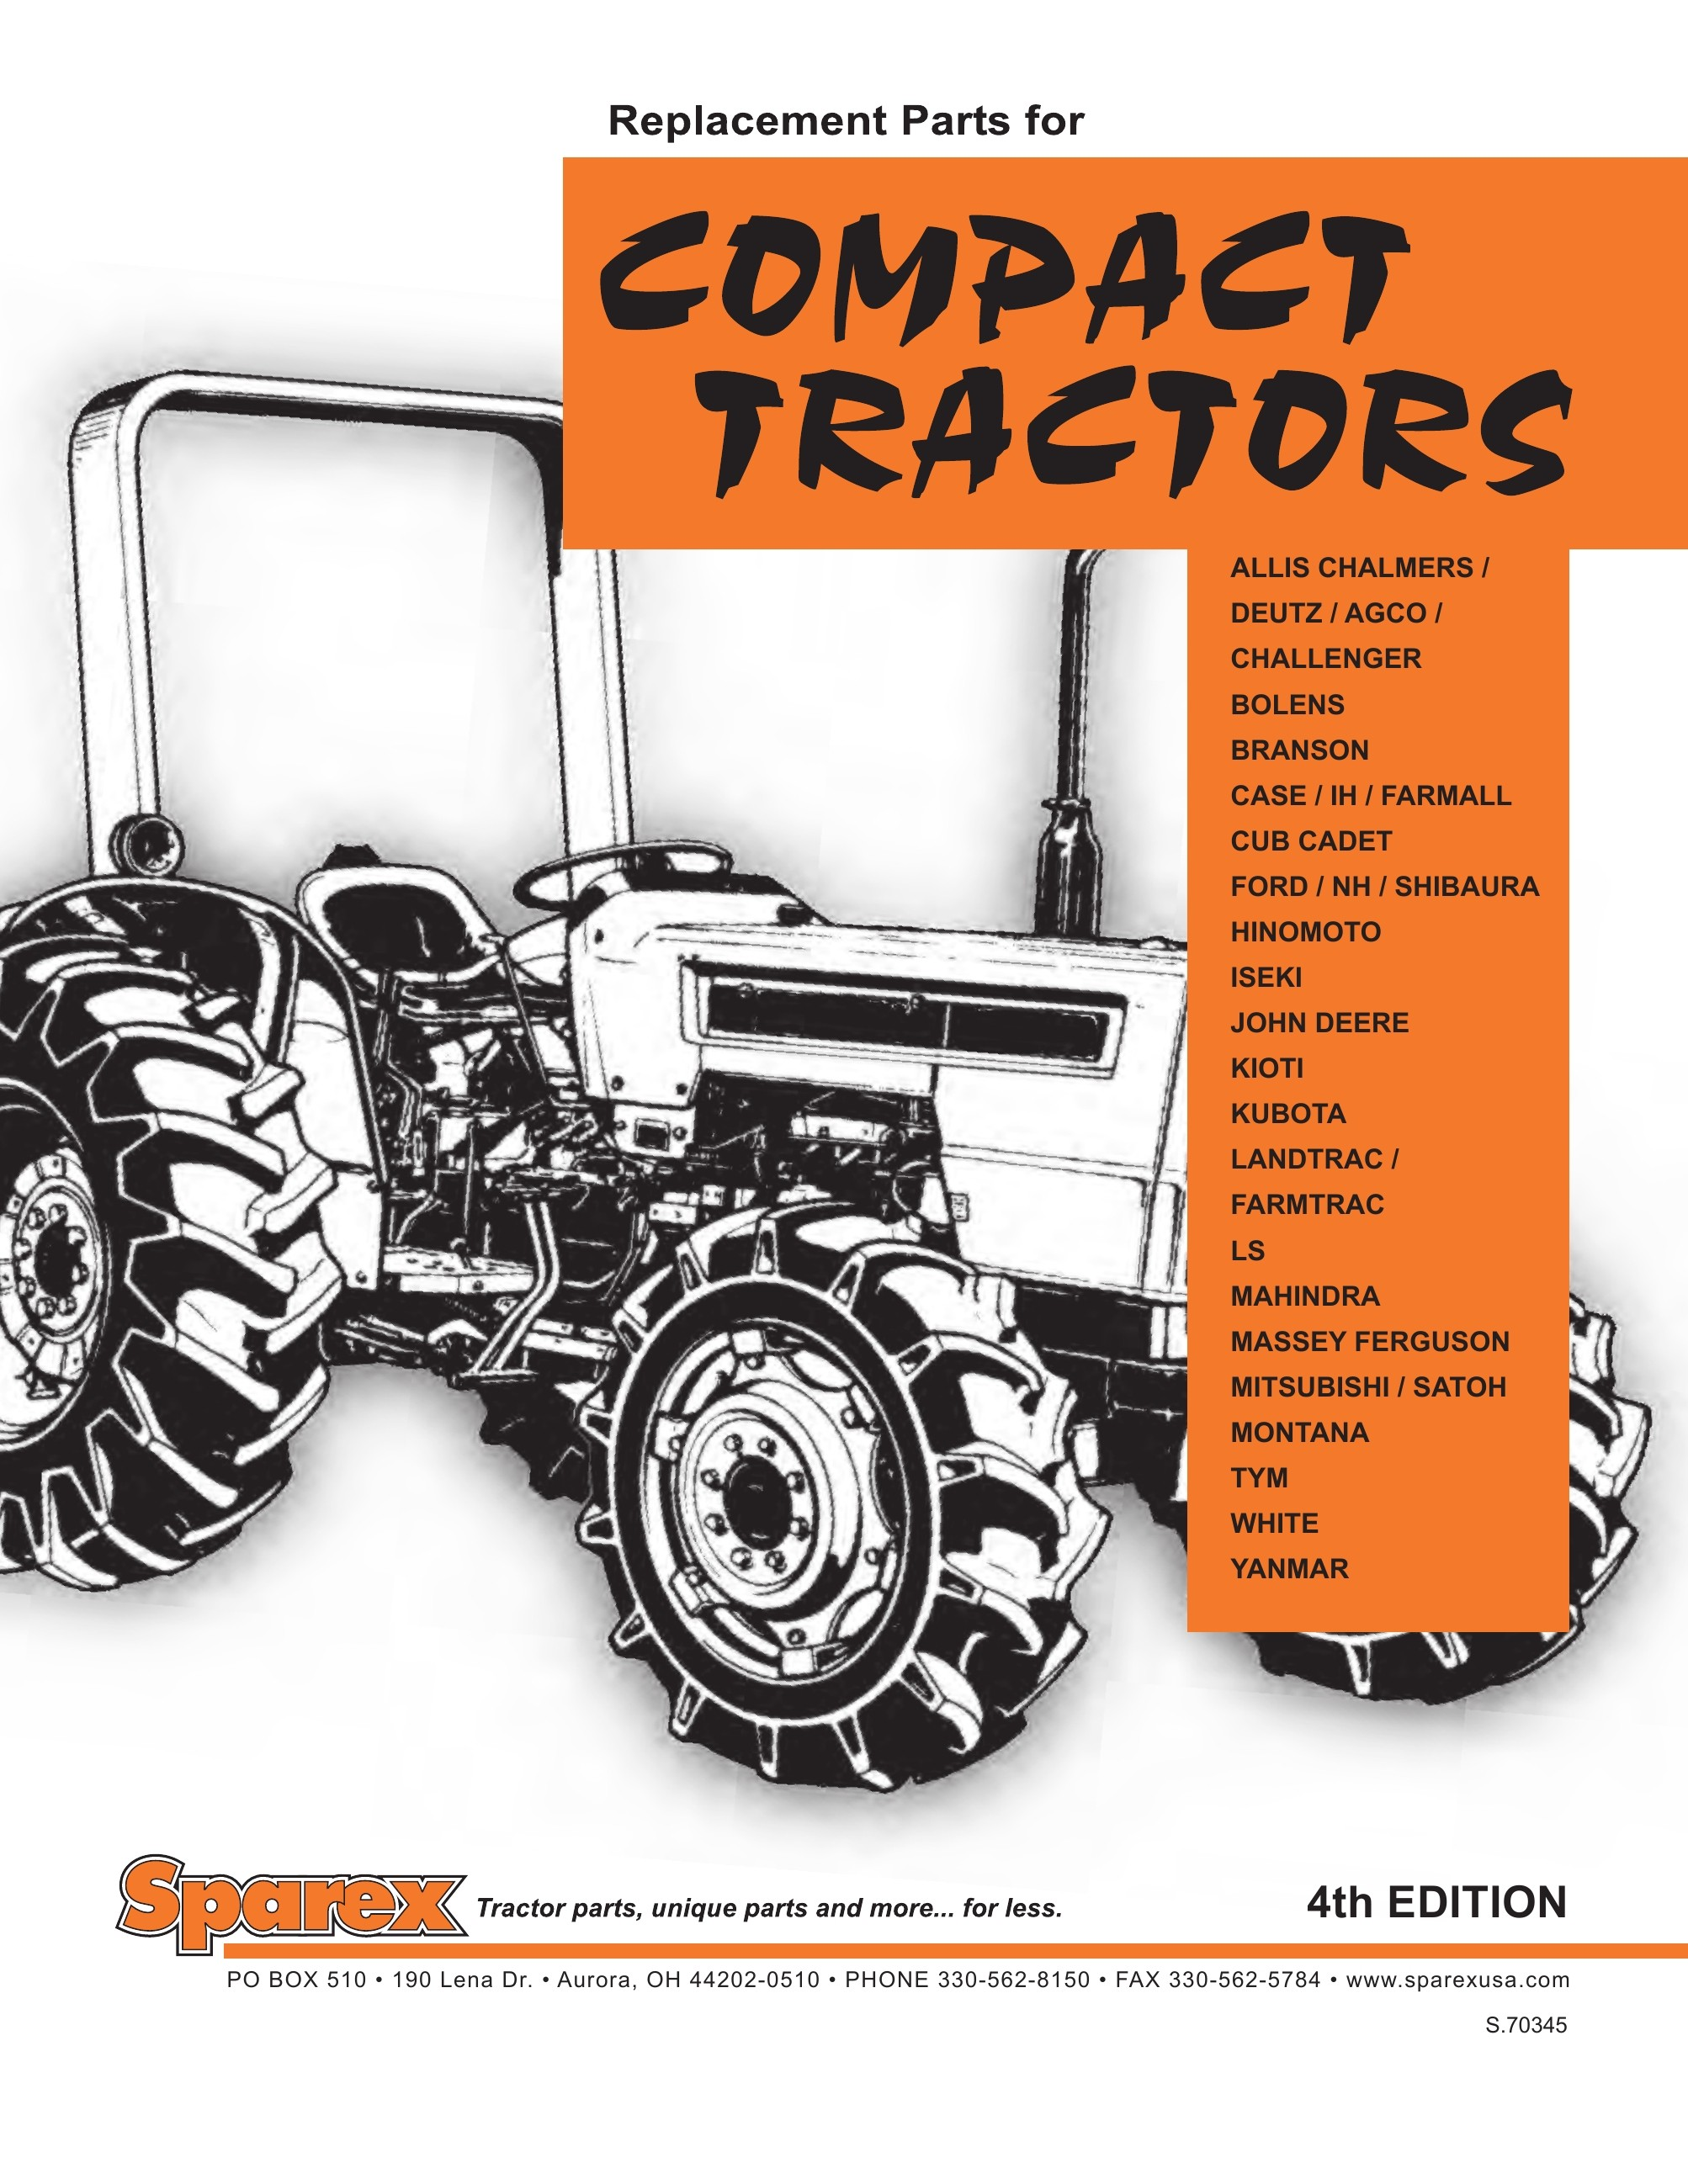 Ford 5000 Tractor Parts Diagram Sparex Catalogs Of Ford 5000 Tractor Parts Diagram